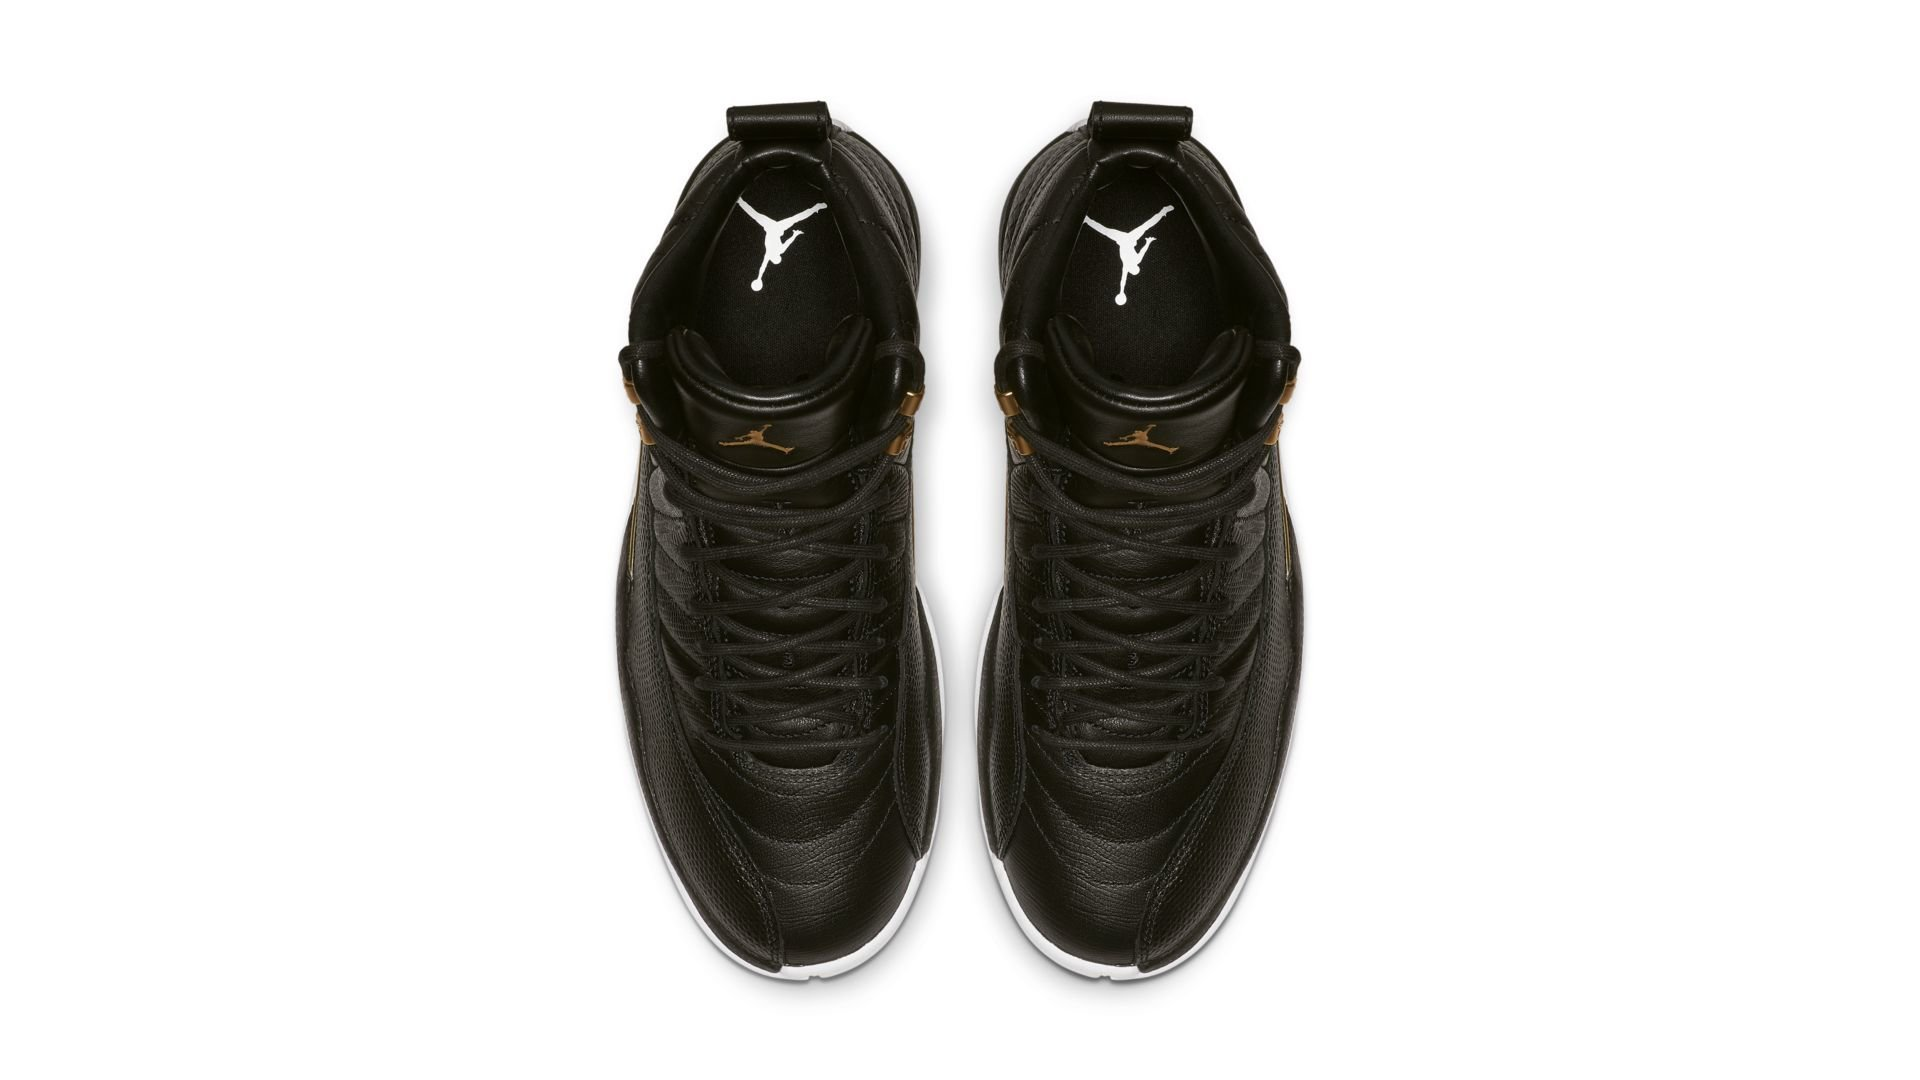 Jordan 12 Retro Black Metallic Gold White (W) (AO6068-007)